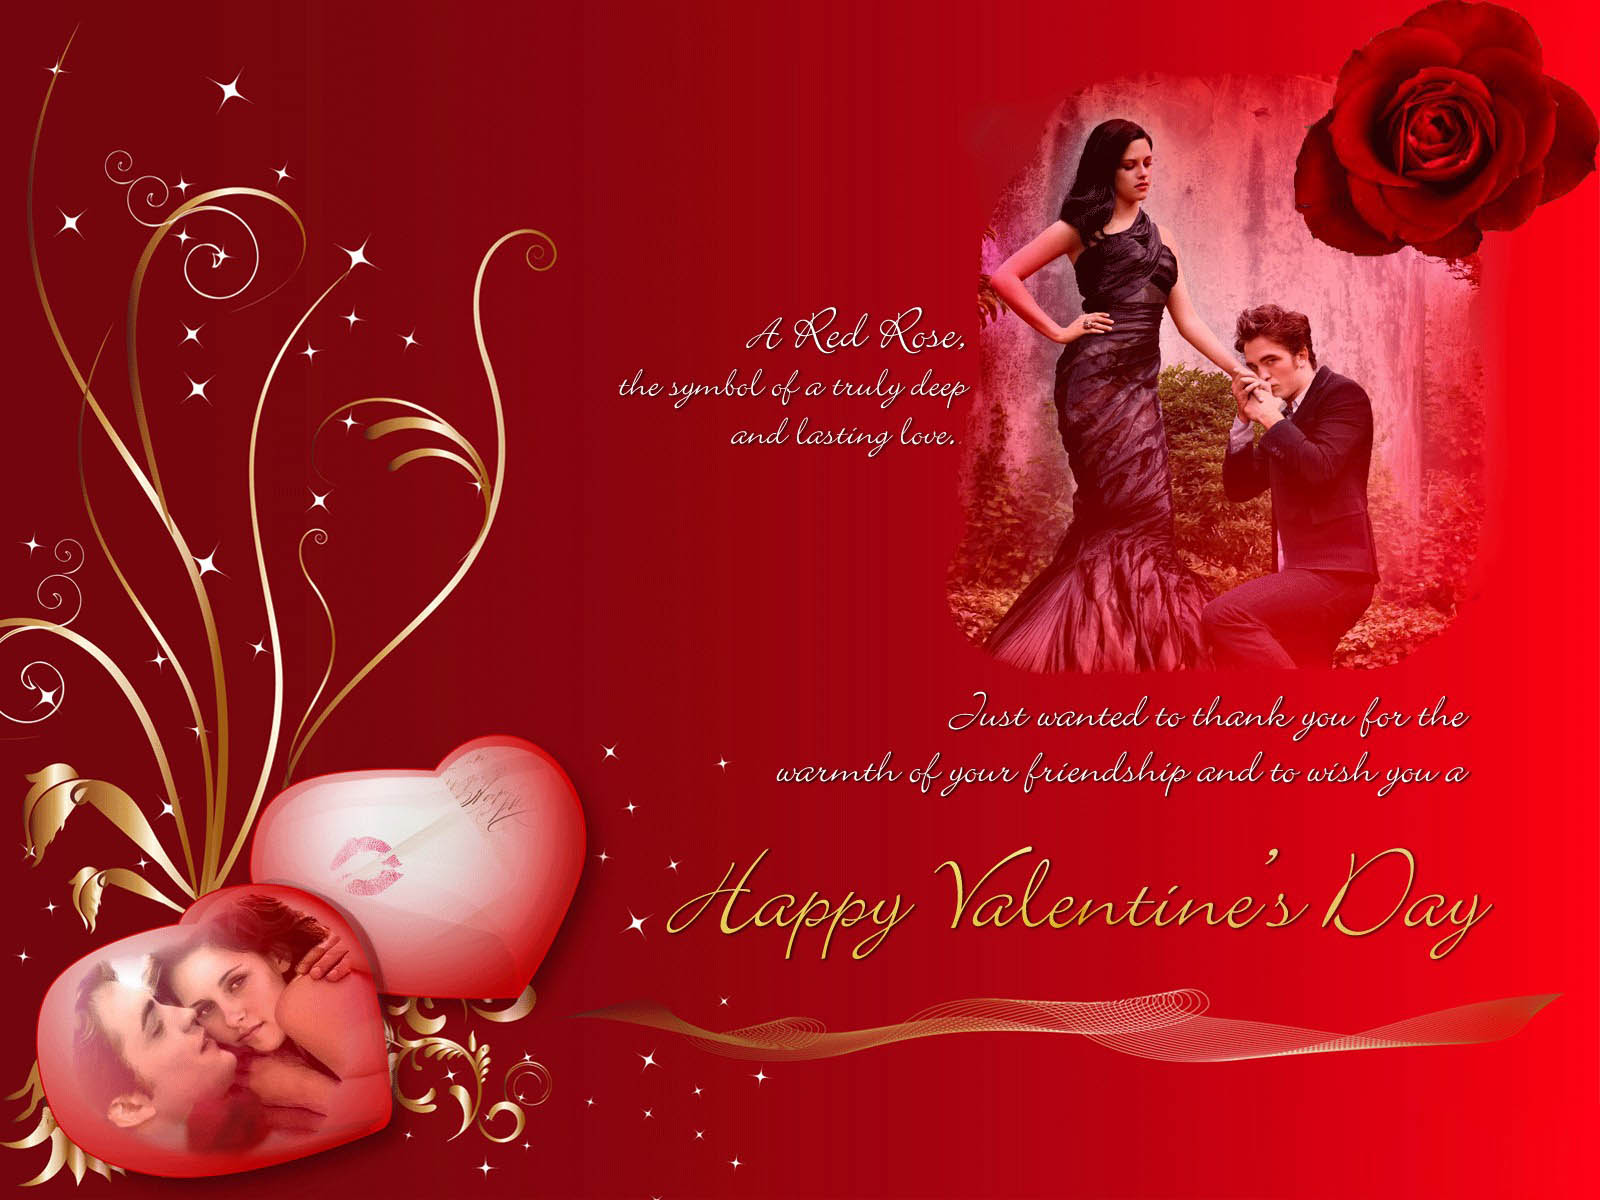 Happy Valentines Day Msg For Girlfriend